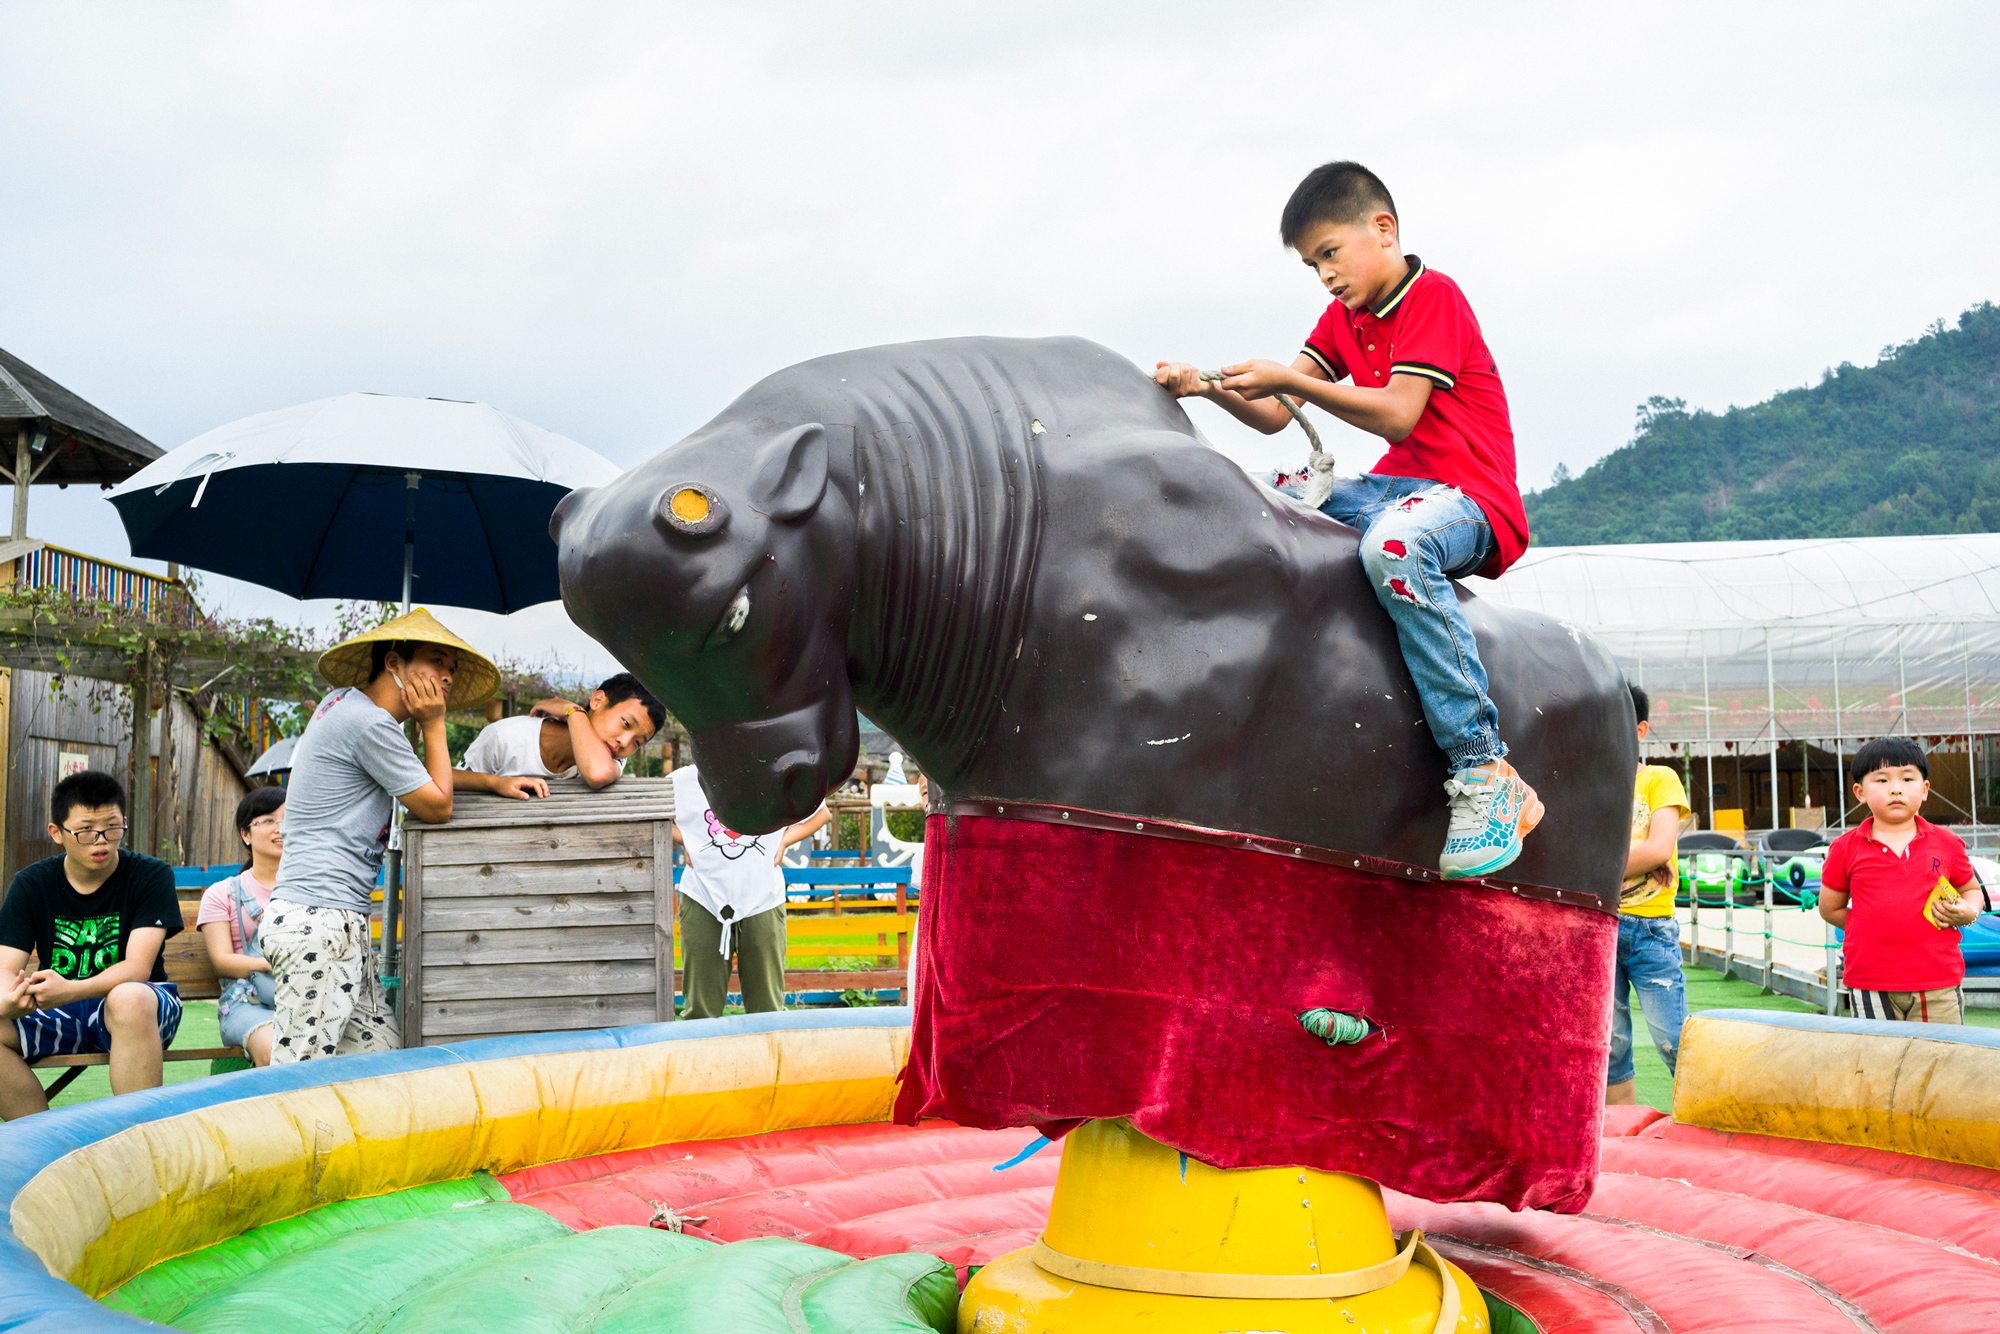 A child rides a mechanical bull at a leisure farm, a type of resort, in Huling township, October 3, 2016.